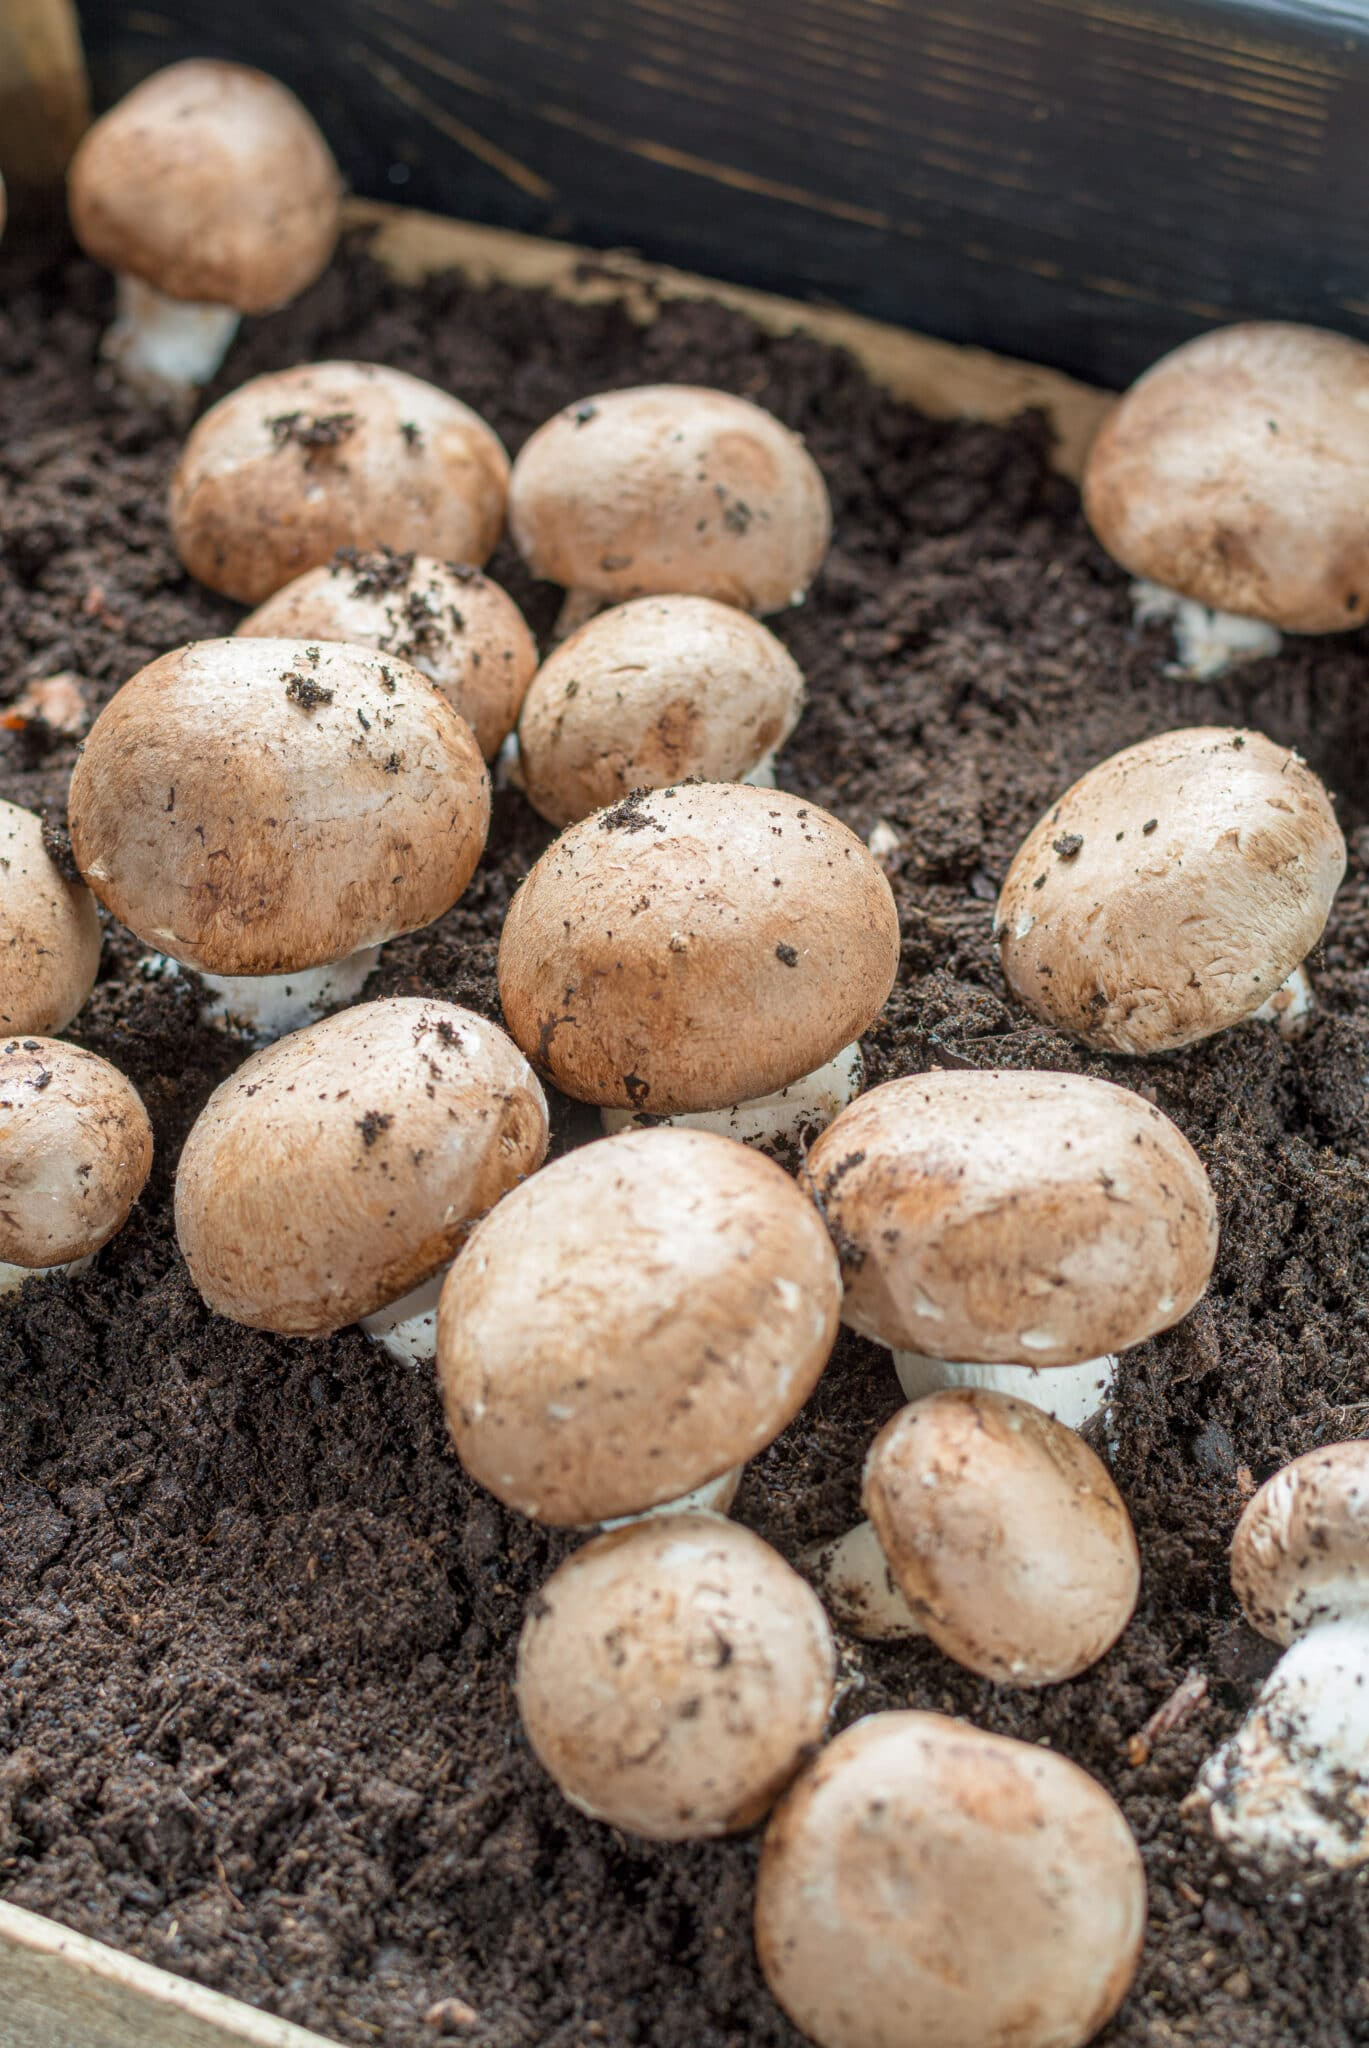 Mushrooms growing in soil in low light, making them ideal vegetables to grow indoors.